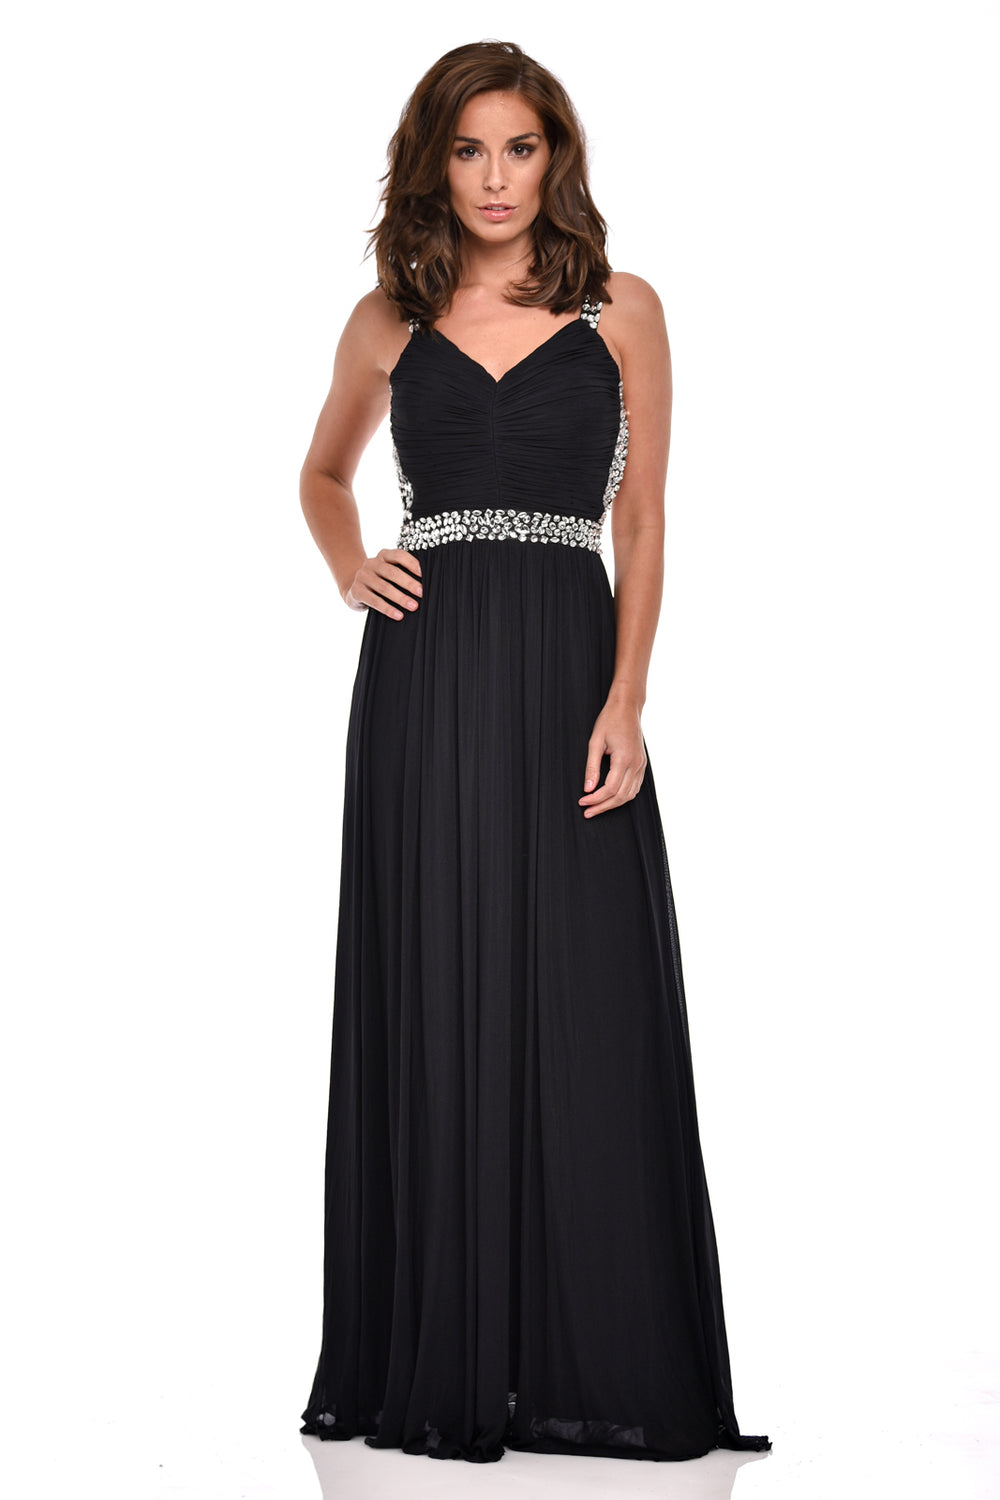 Nola Black Backless Maxi Grecian Dress